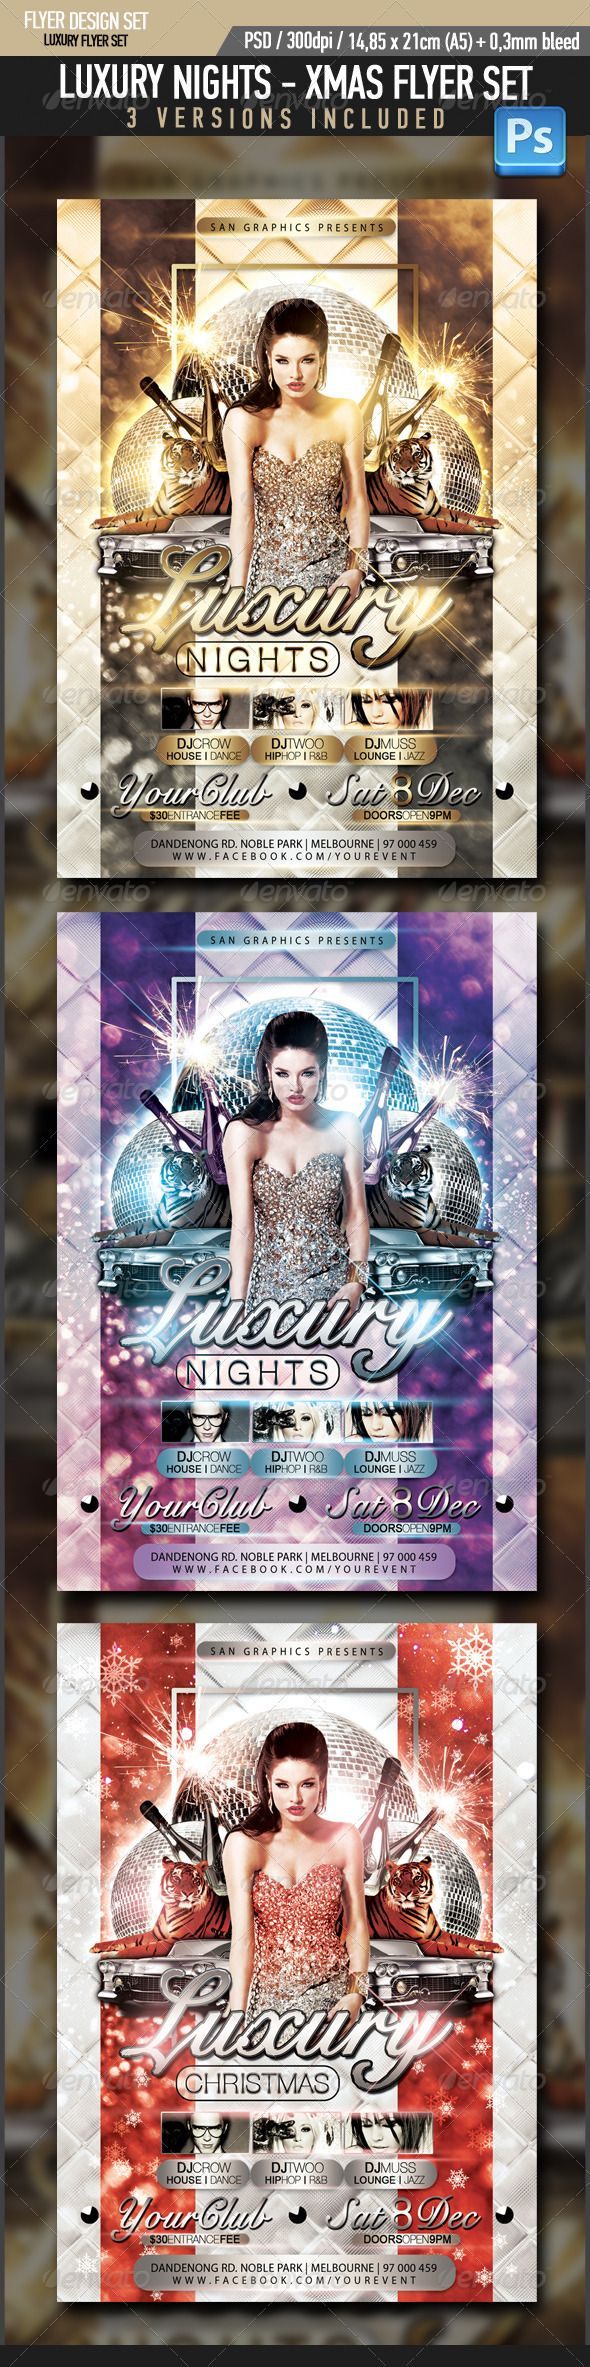 luxury nights xmas flyer glow fonts and night luxury nights xmas flyer graphicriver item for